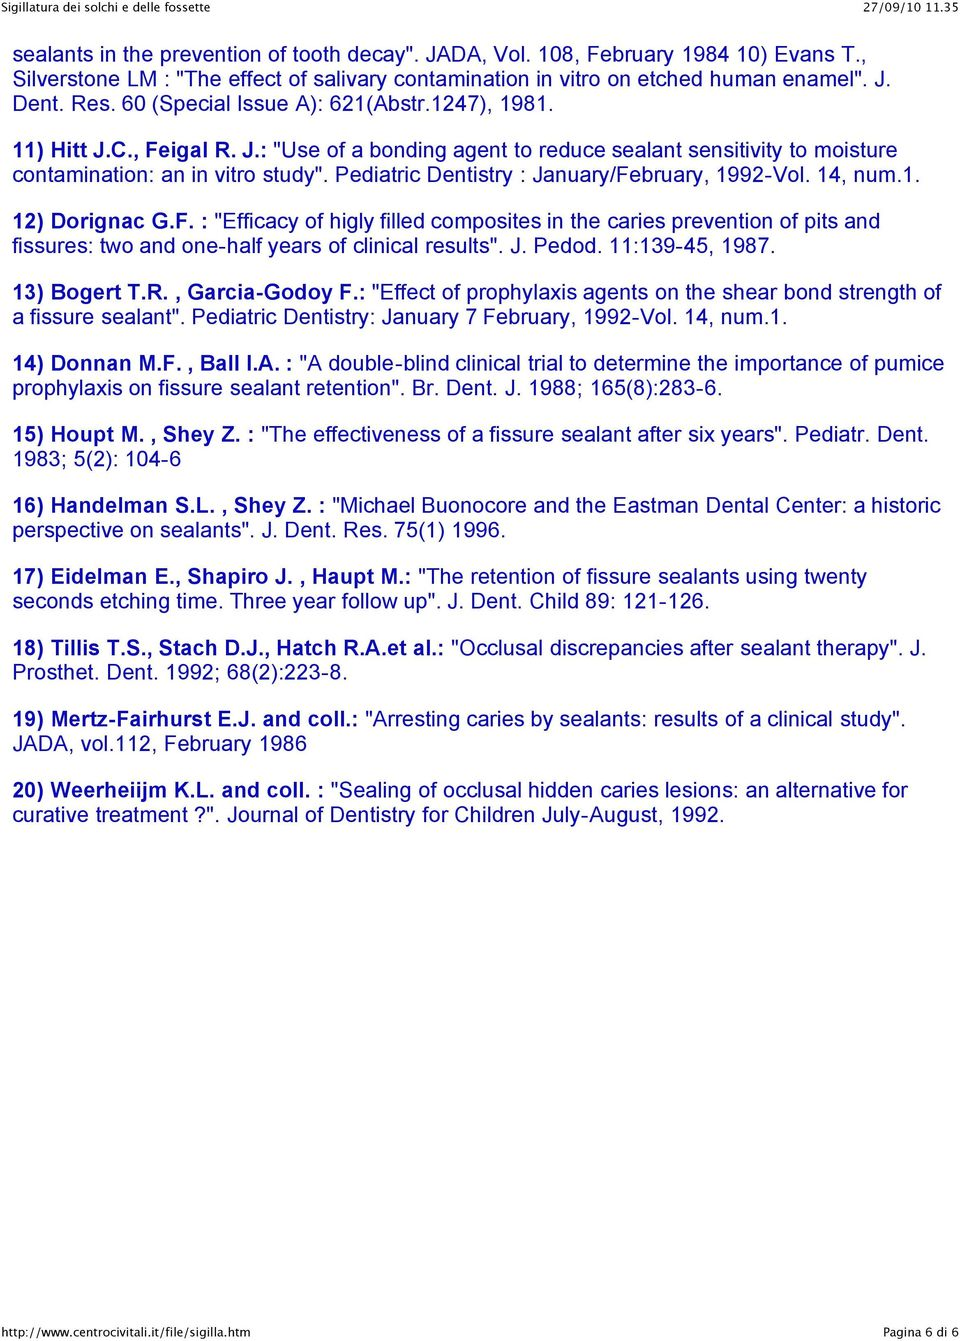 "Pediatric Dentistry : January/February, 1992-Vol. 14, num.1. 12) Dorignac G.F. : ""Efficacy of higly filled composites in the caries prevention of pits and fissures: two and one-half years of clinical results""."